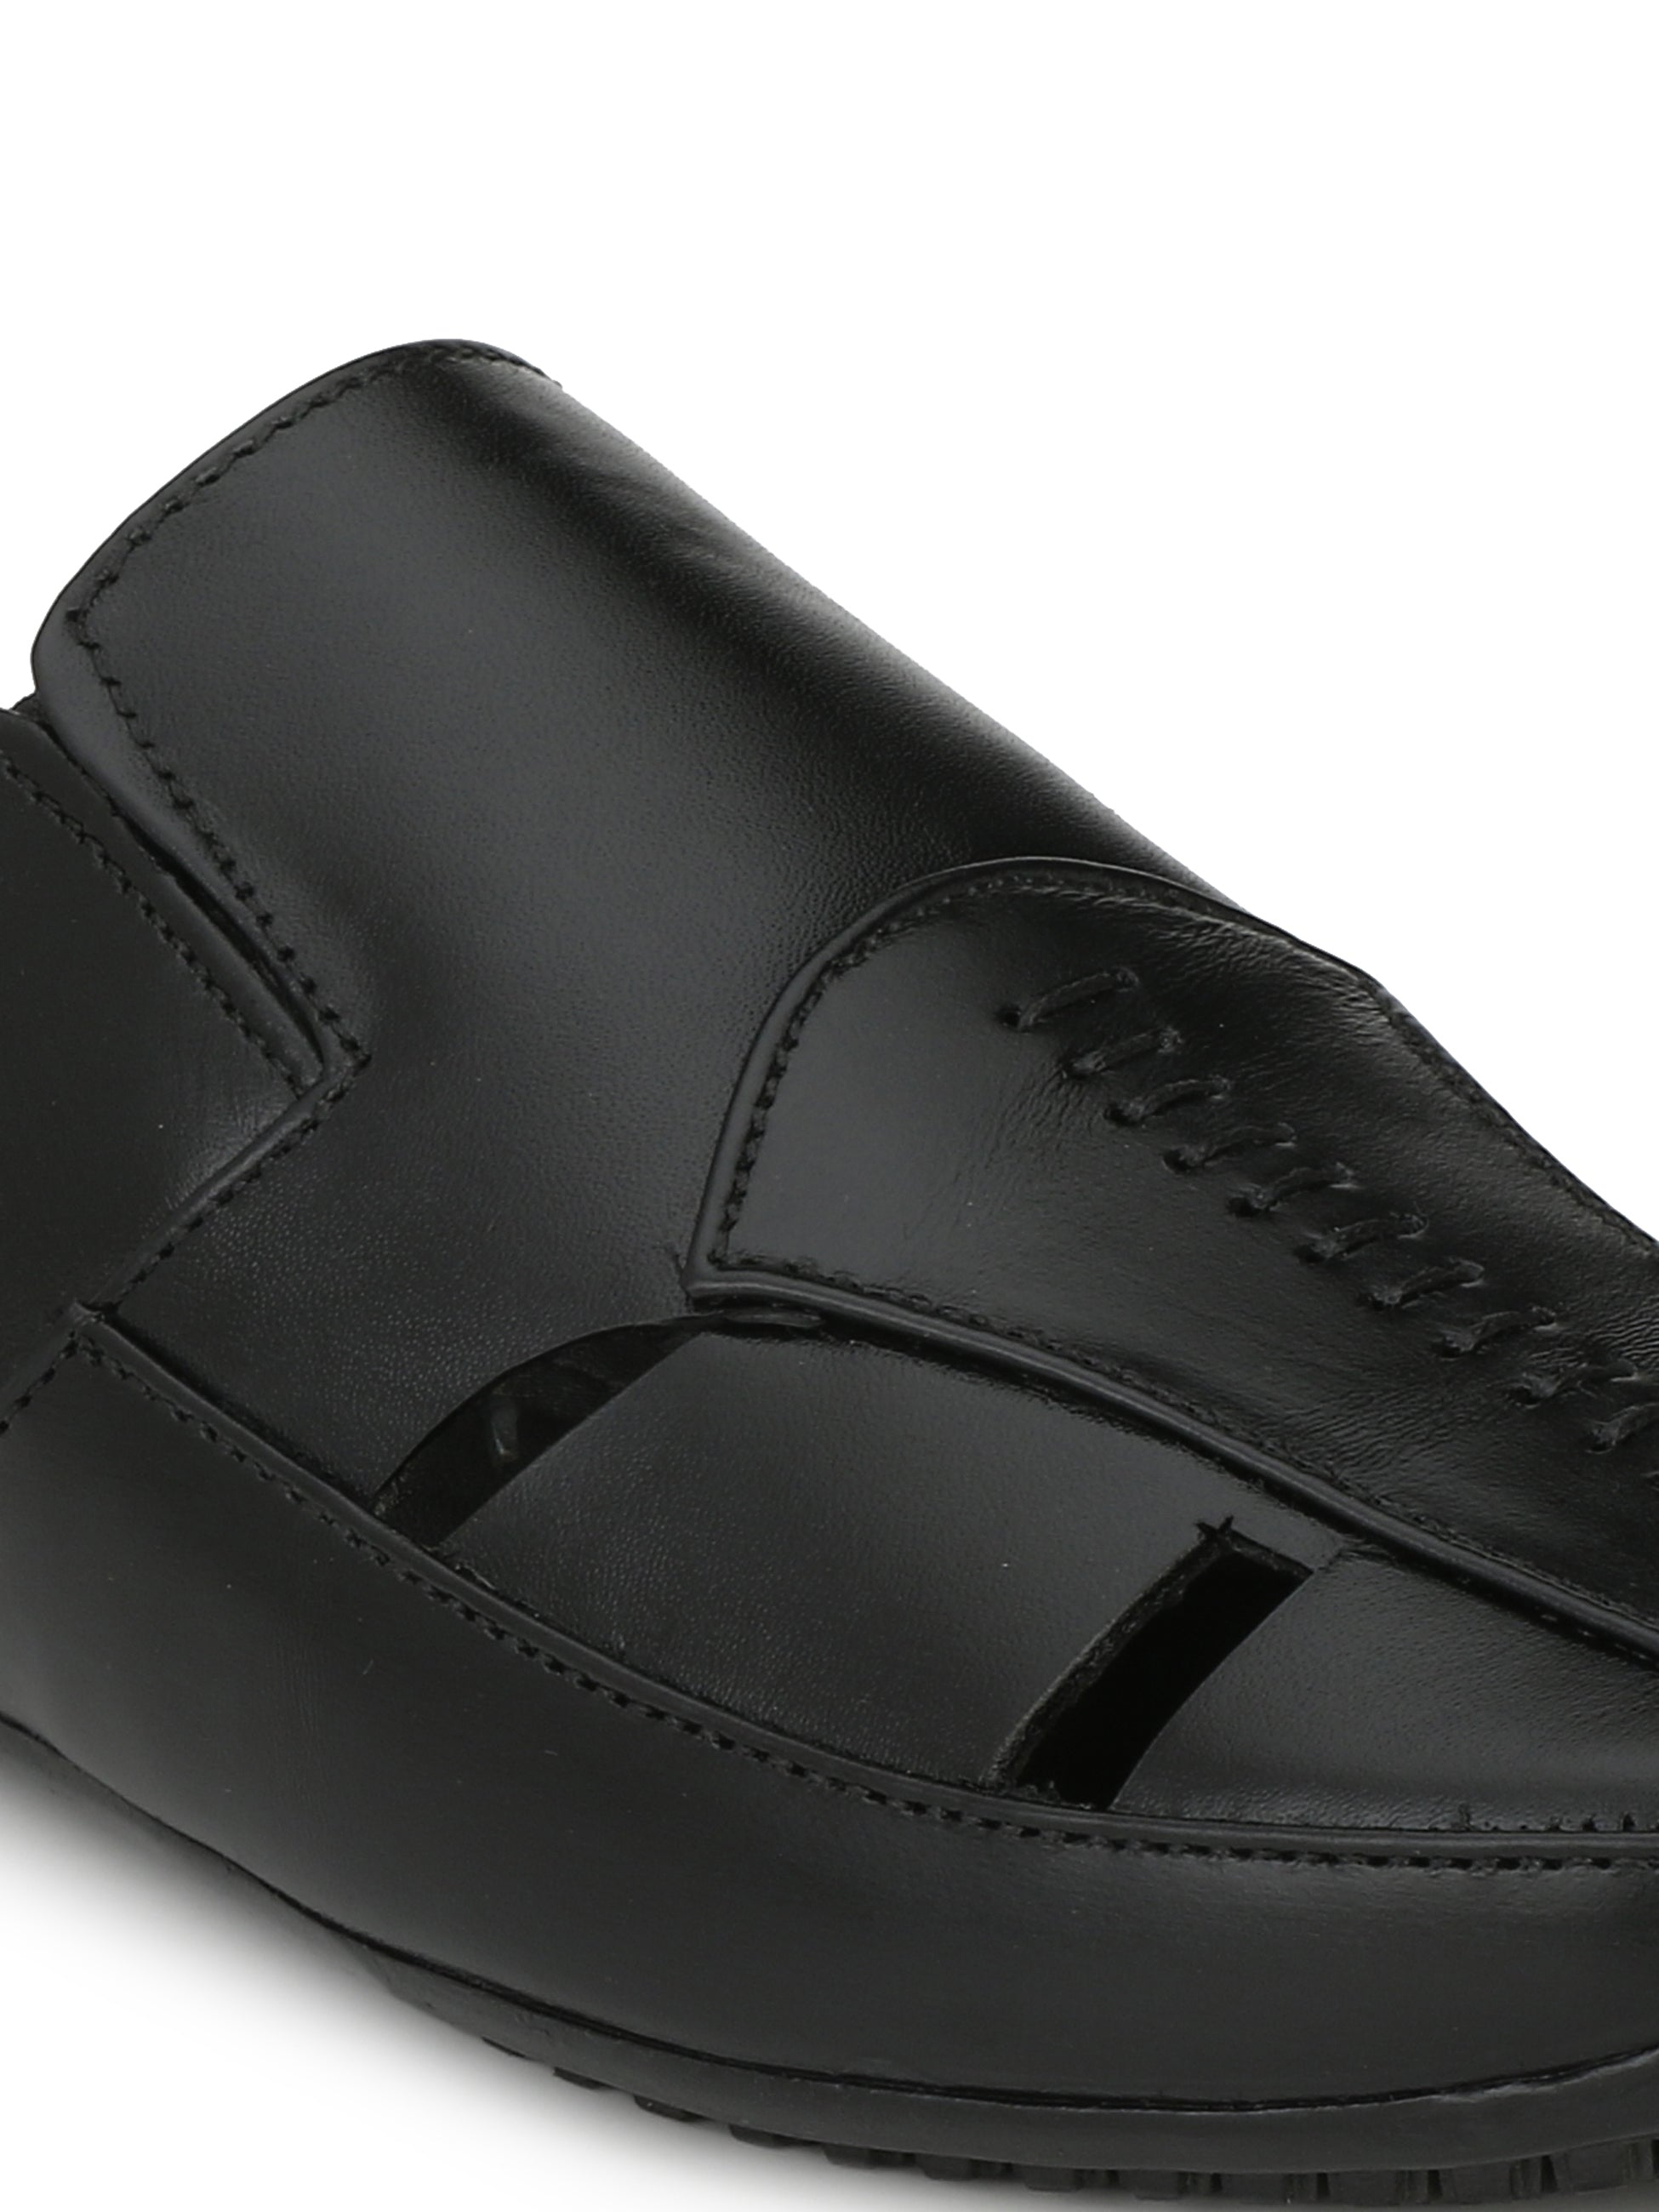 Black Genuine Leather Mule - shoegaro